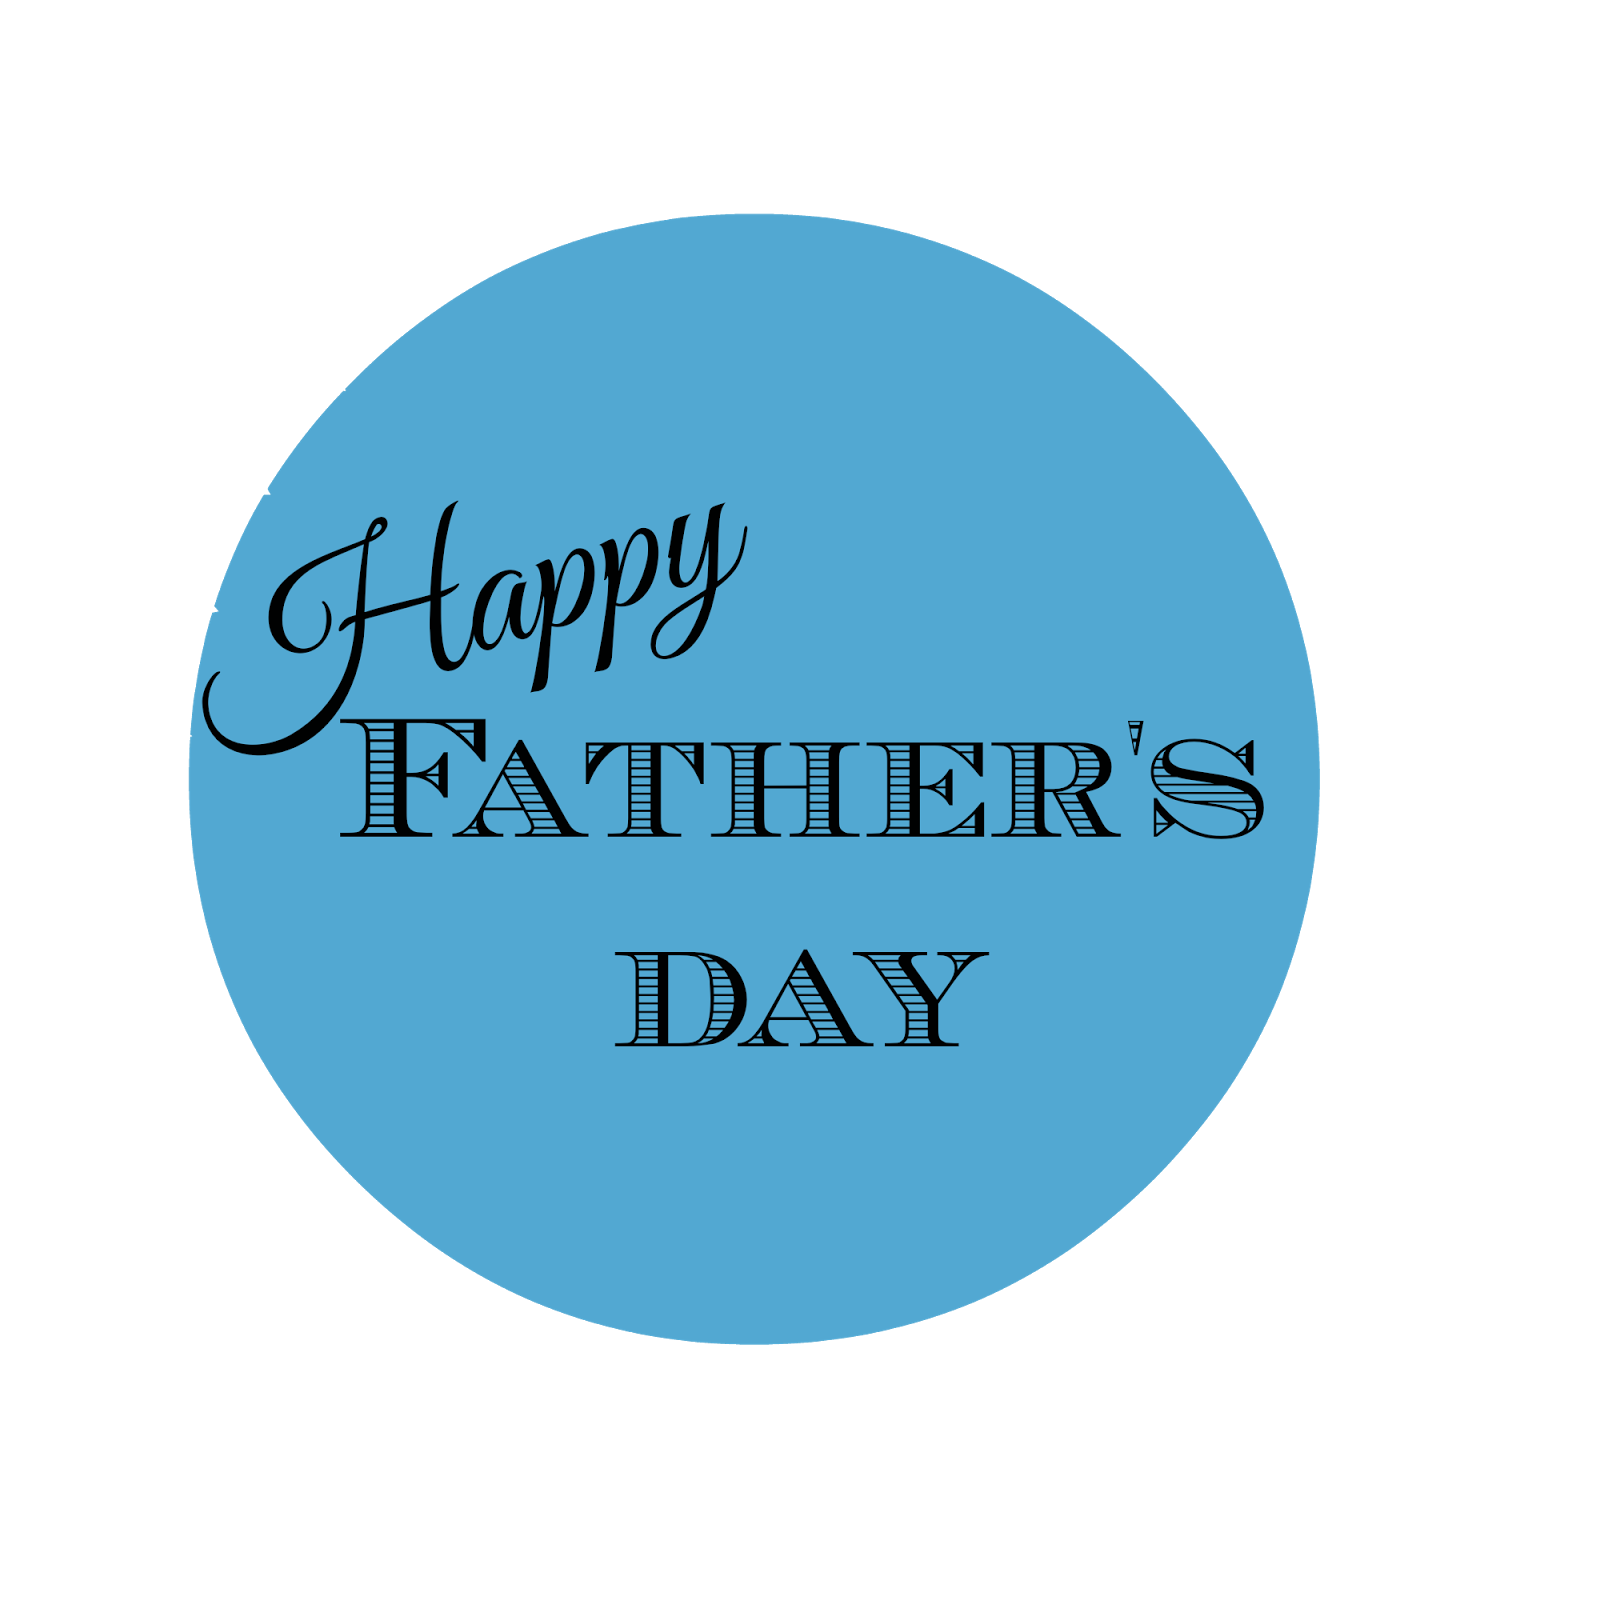 High-quality Fathers Day Cliparts For Free! image #7617